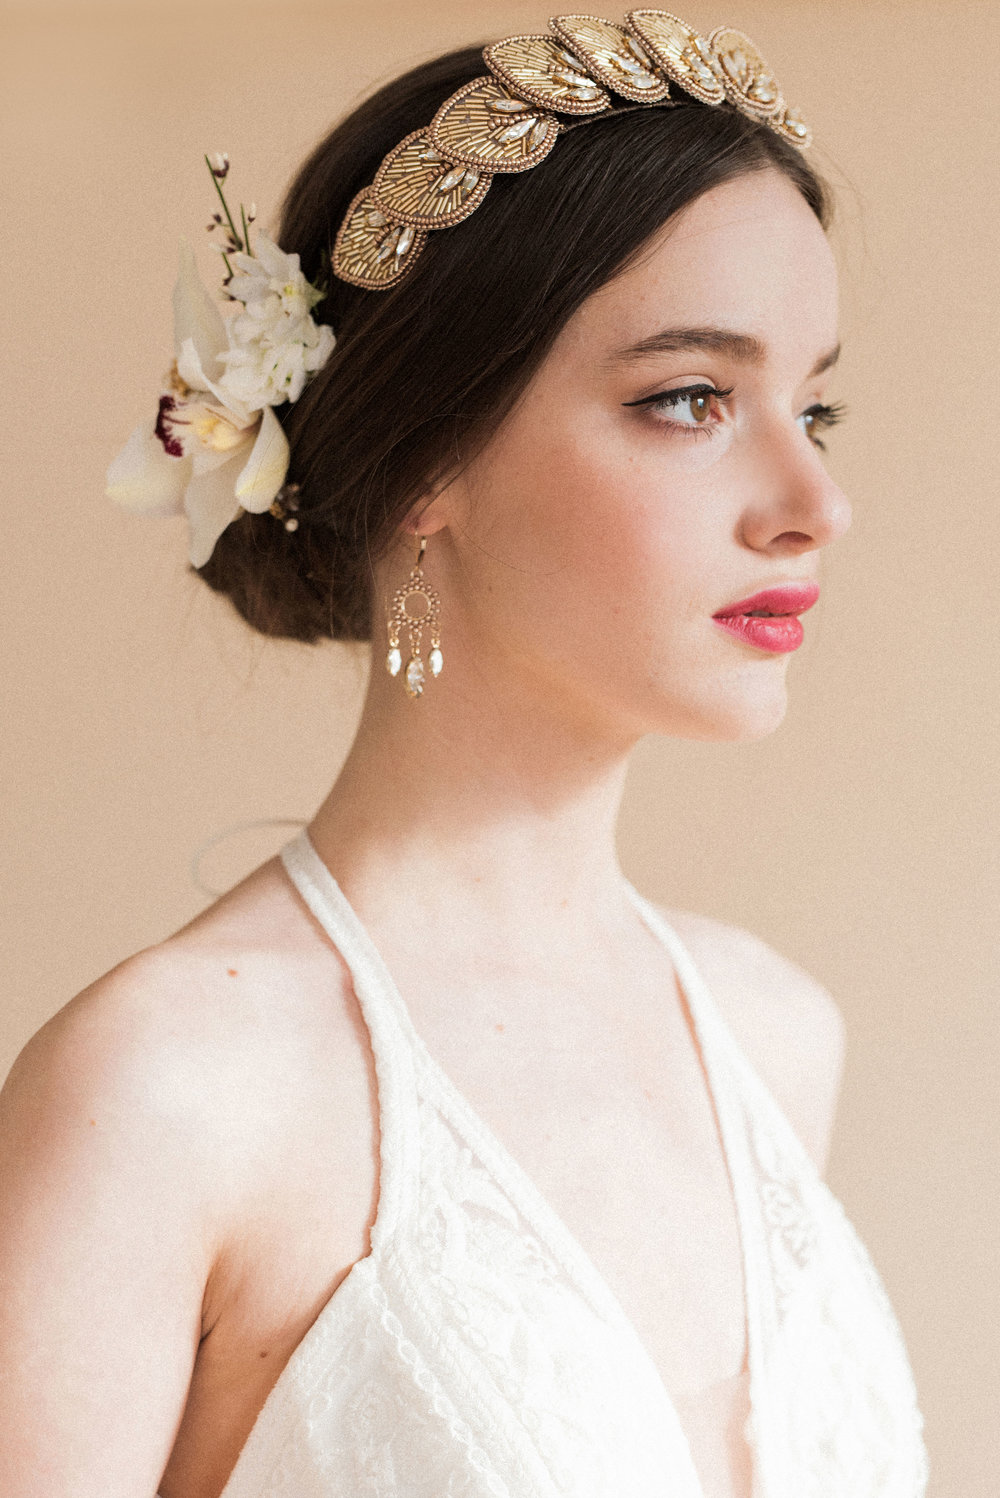 Bridal headdresses and jewellery by victoria fergusson accessories (41).jpg